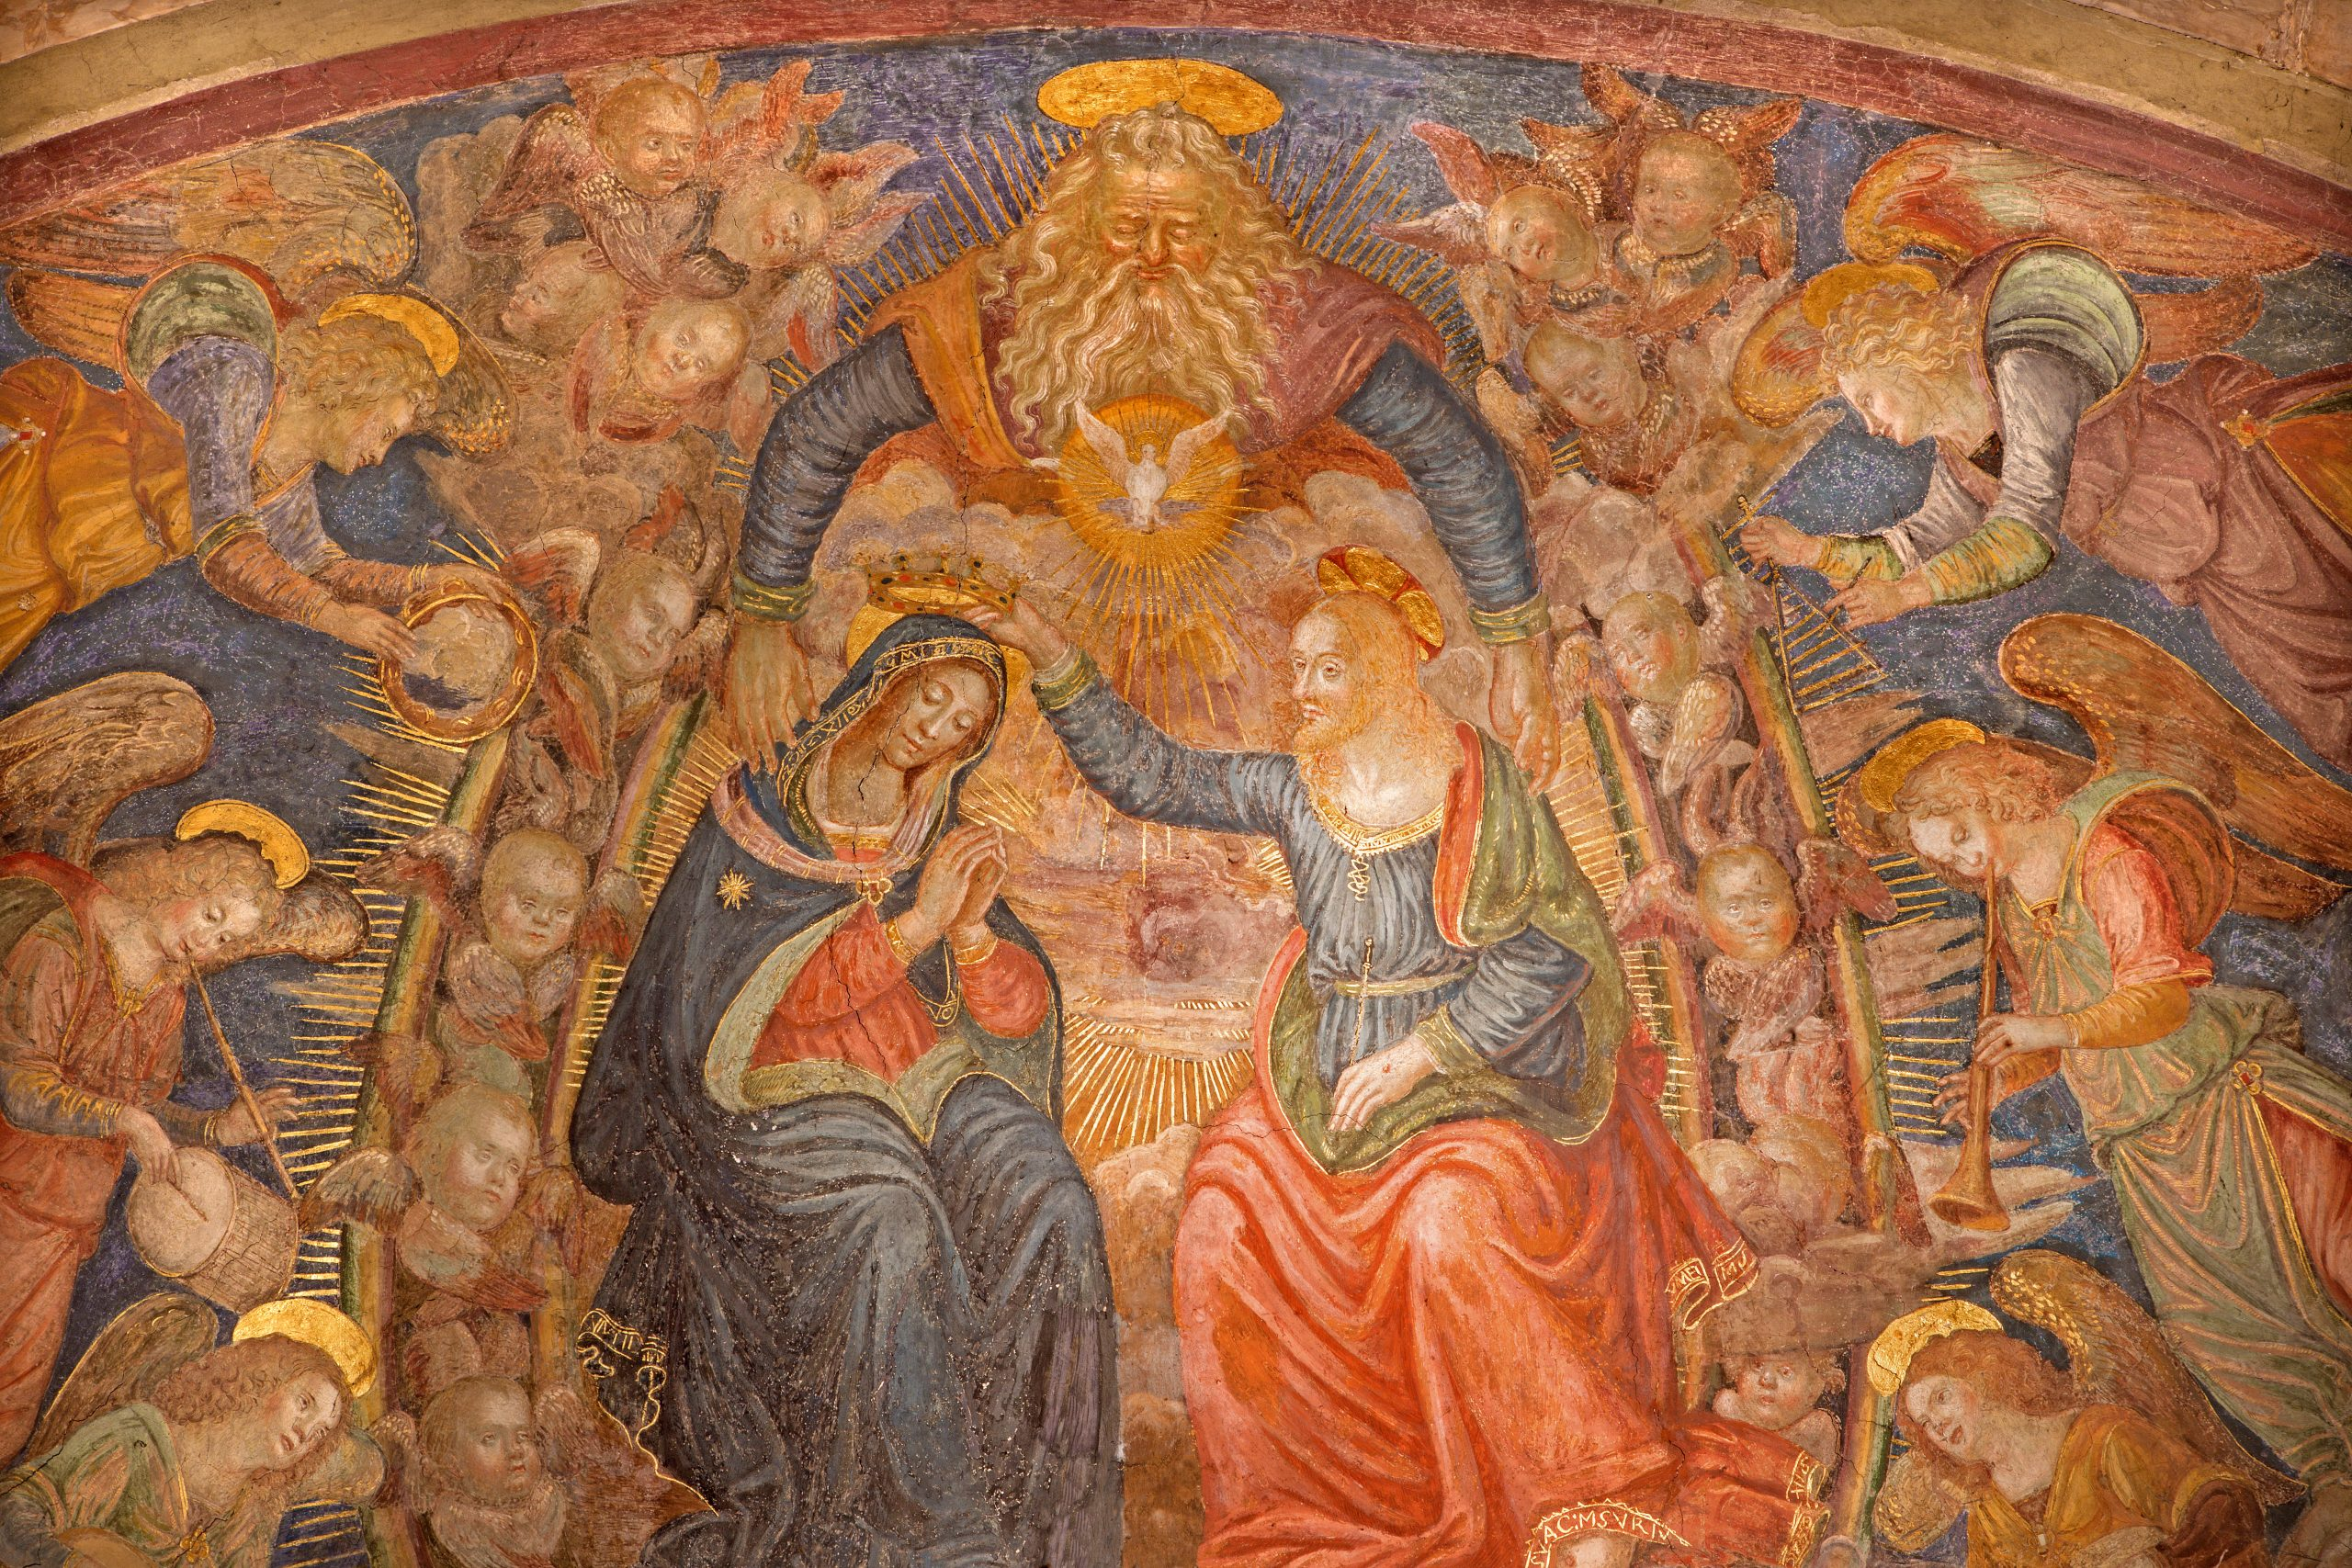 Mary's Assumption to Heaven and Coronation